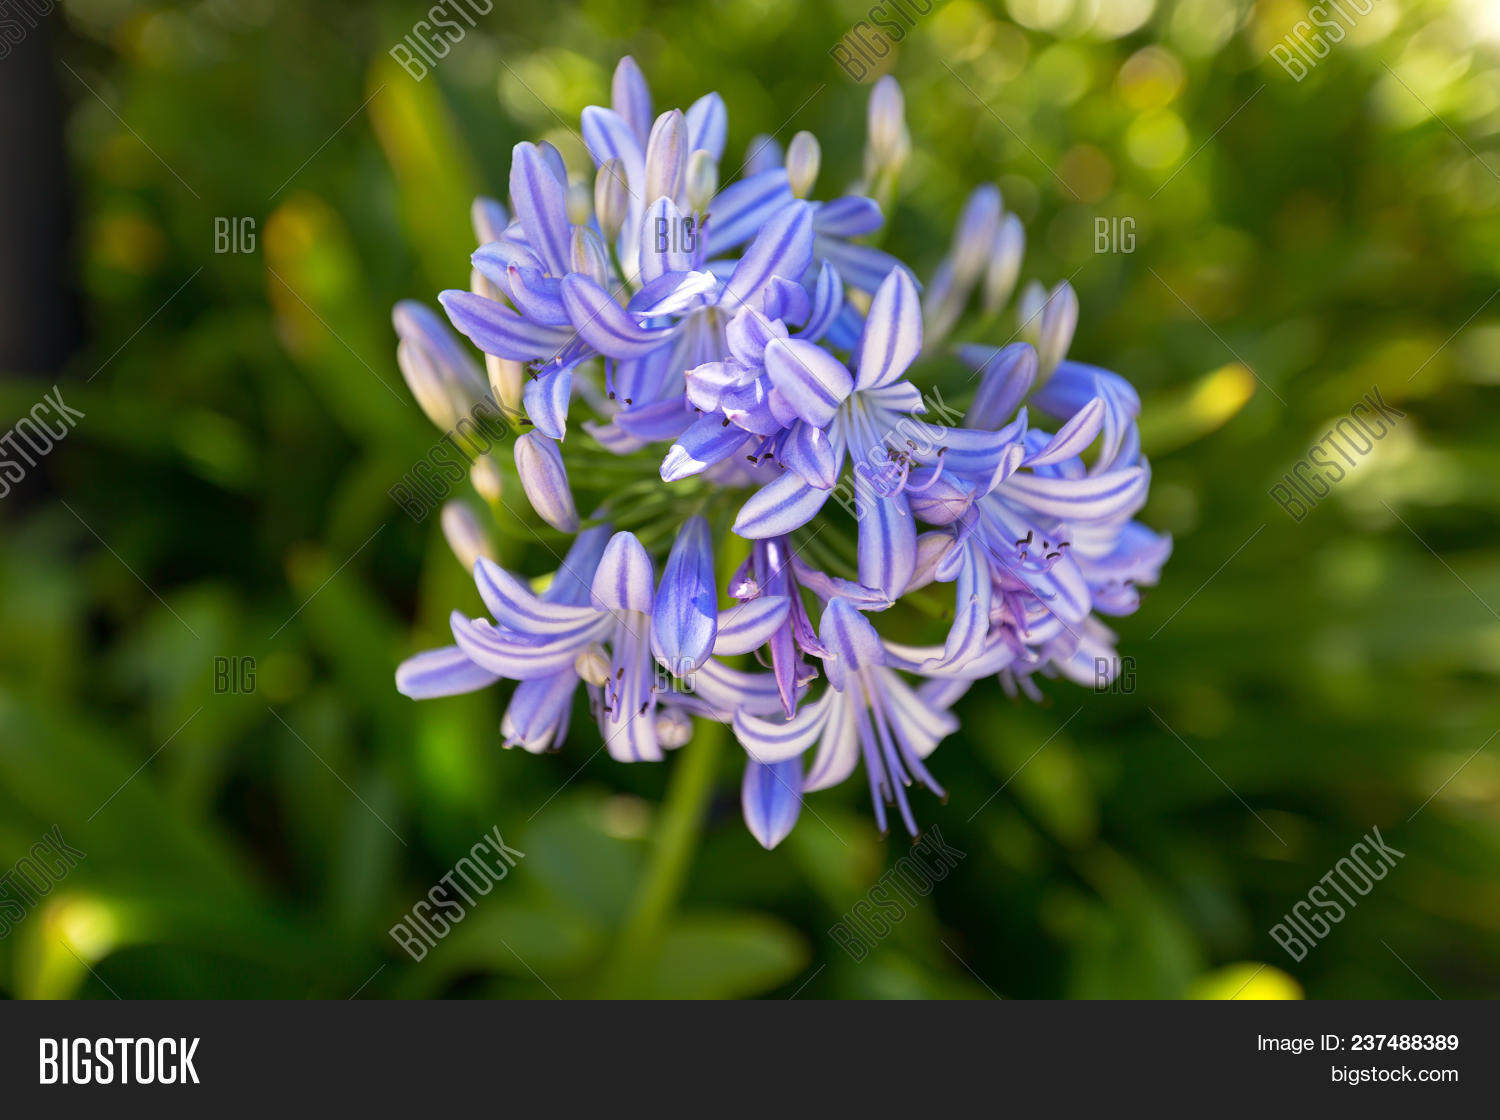 Lily Nile Flower Blue Image Photo Free Trial Bigstock